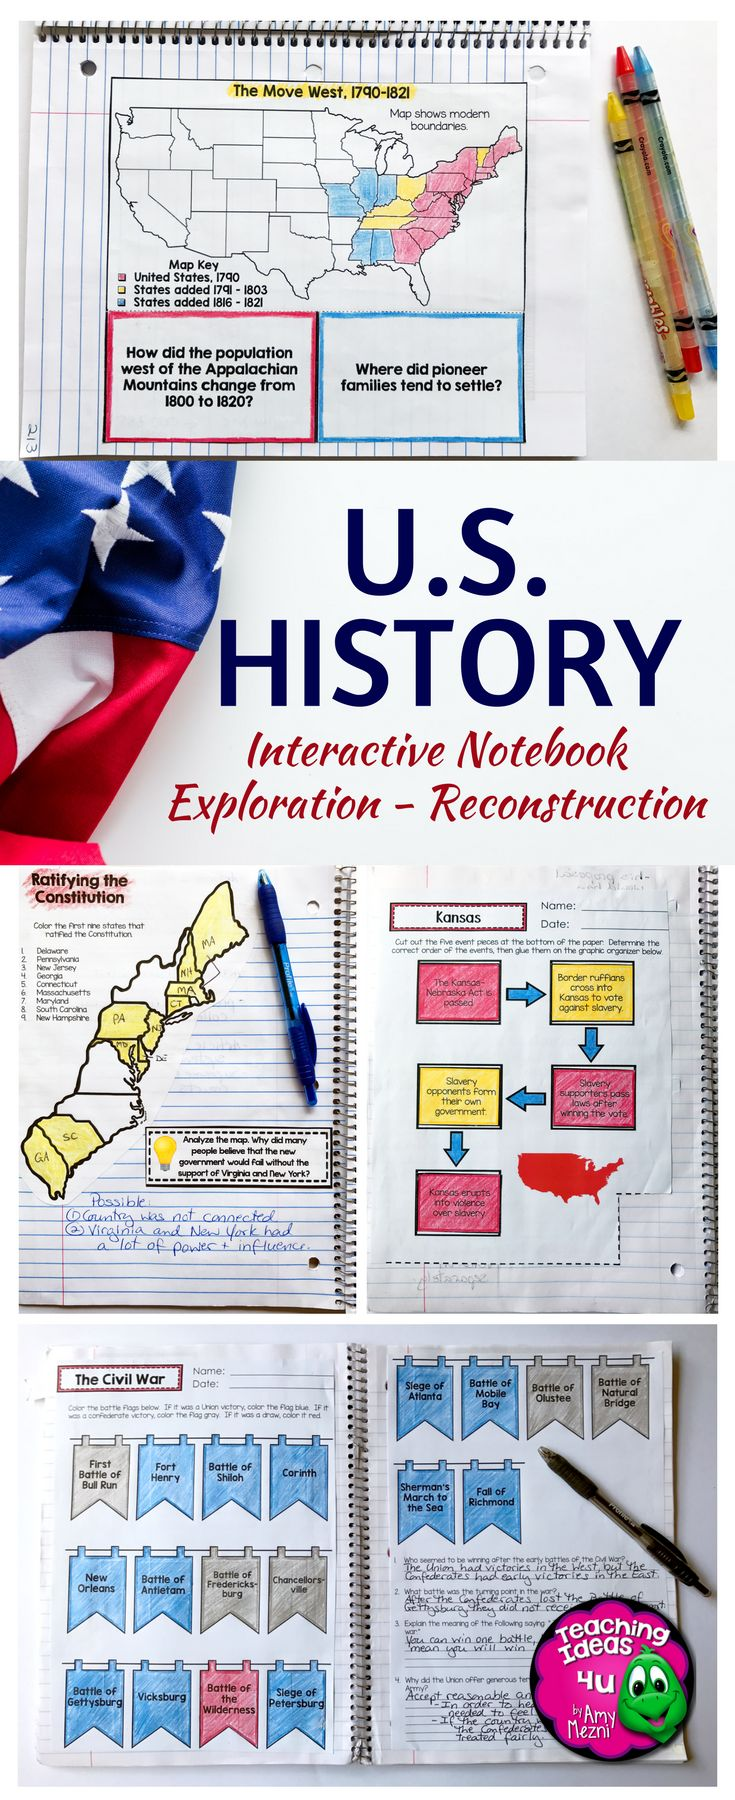 American History Interactive Notebook - Exploration through Reconstruction Bundle - Use this 300+ page resource with your 6th, 7th, 8th, or 9th grade classroom or home school students. Graphic organizers, interactive notebook materials, quizzes, and more are included. These work great as scaffolded notes too! Topics include European explorers, the Reformation, Patrick Henry, Thomas Paine, Federalism, and much more! {middle schoolers, sixth, seventh, eighth, ninth graders, U.S. History, US Histor